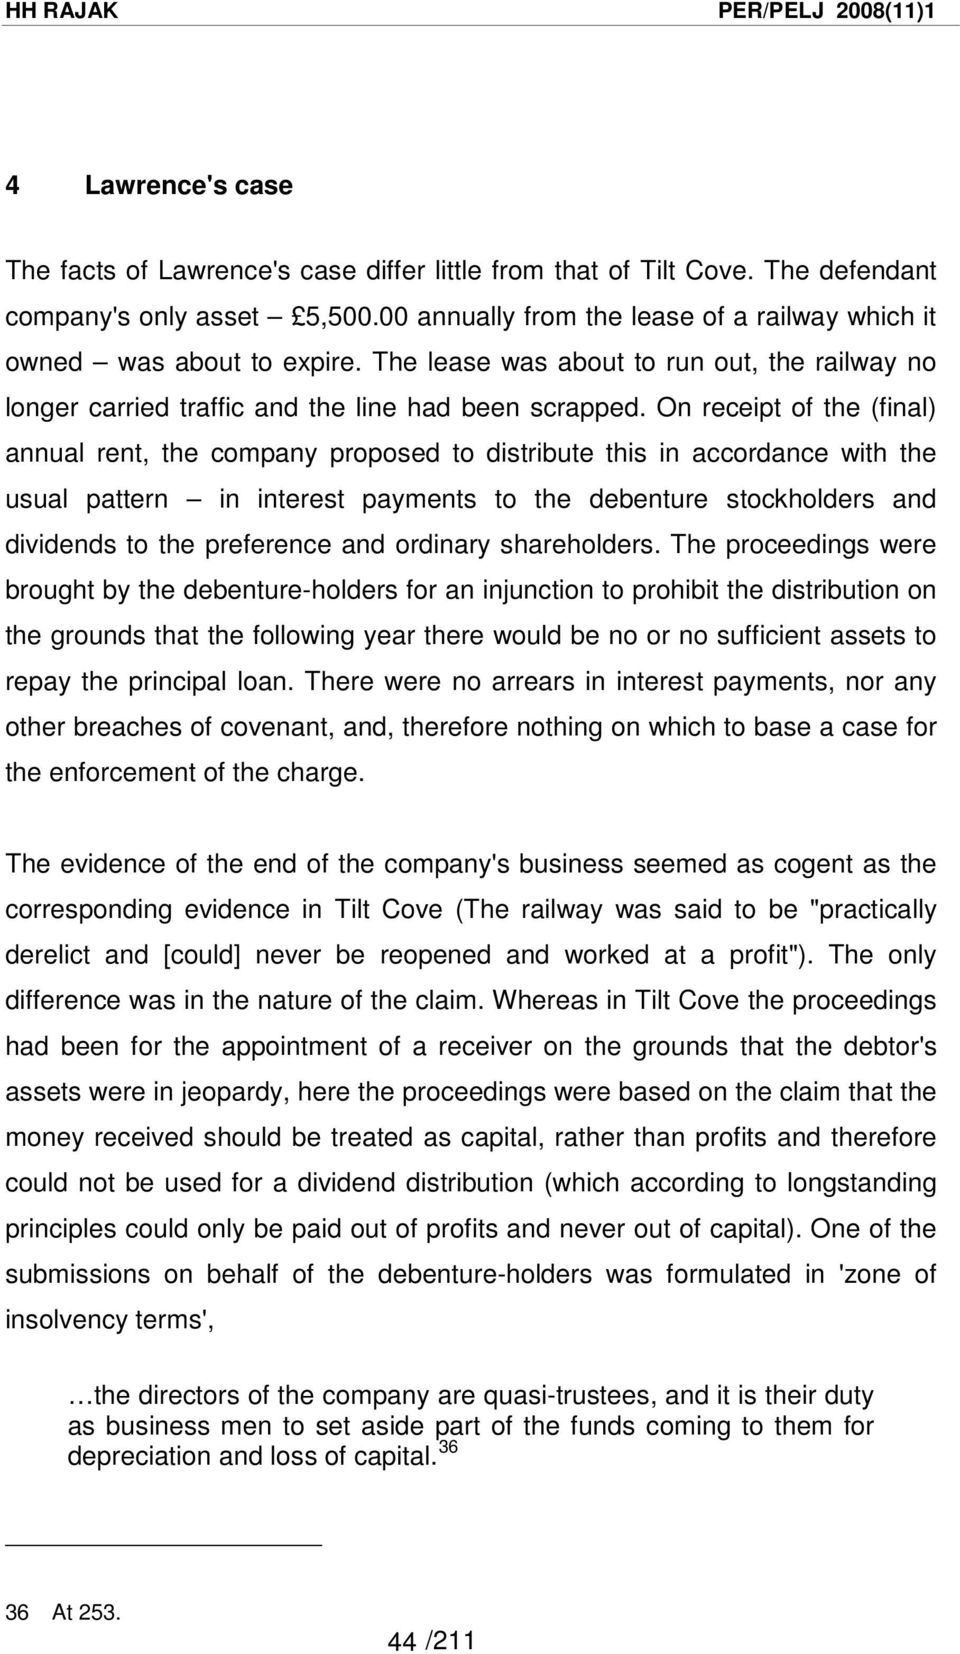 On receipt of the (final) annual rent, the company proposed to distribute this in accordance with the usual pattern in interest payments to the debenture stockholders and dividends to the preference